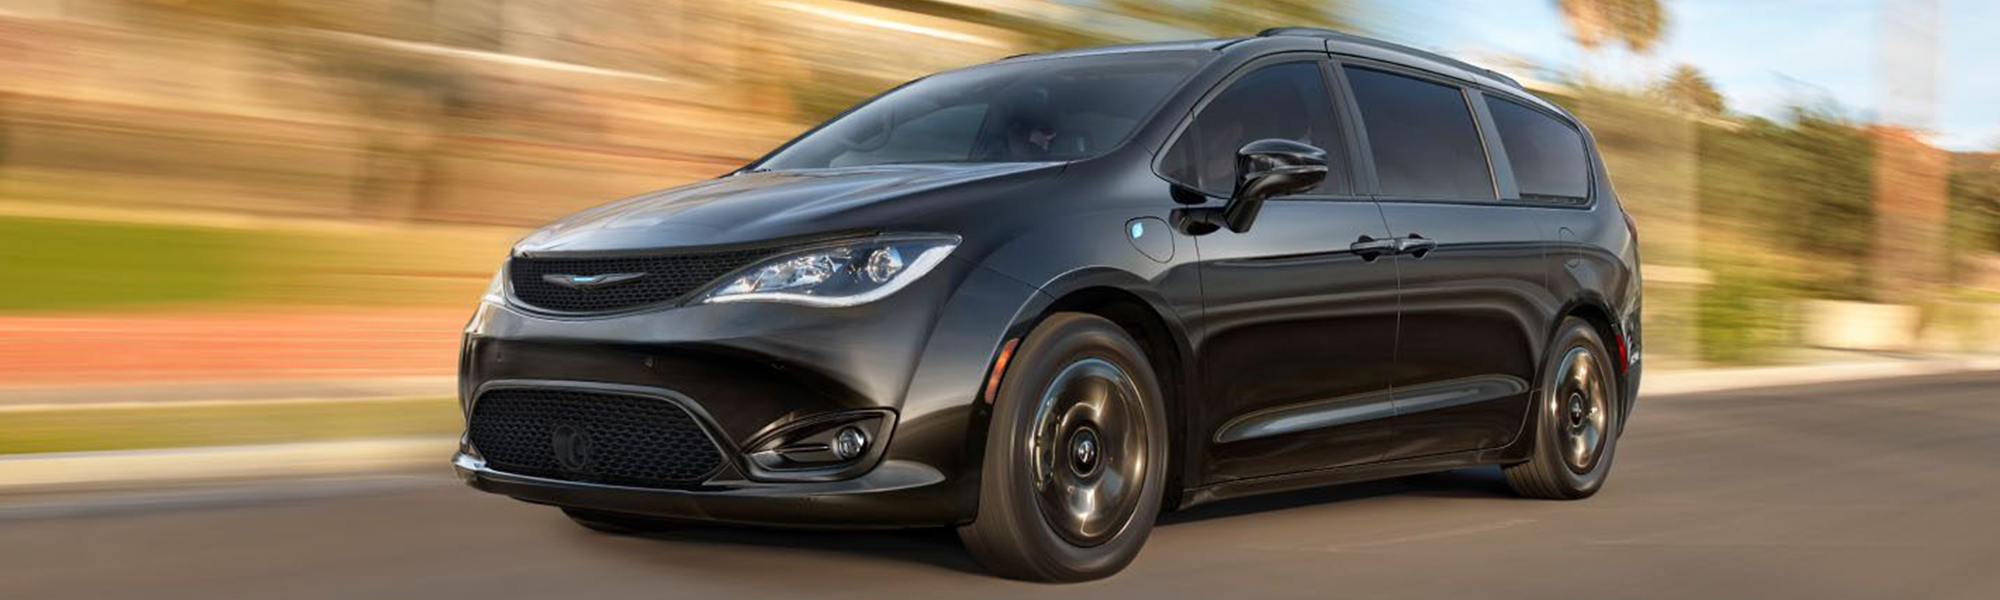 2020 Chrysler Pacifica for sale